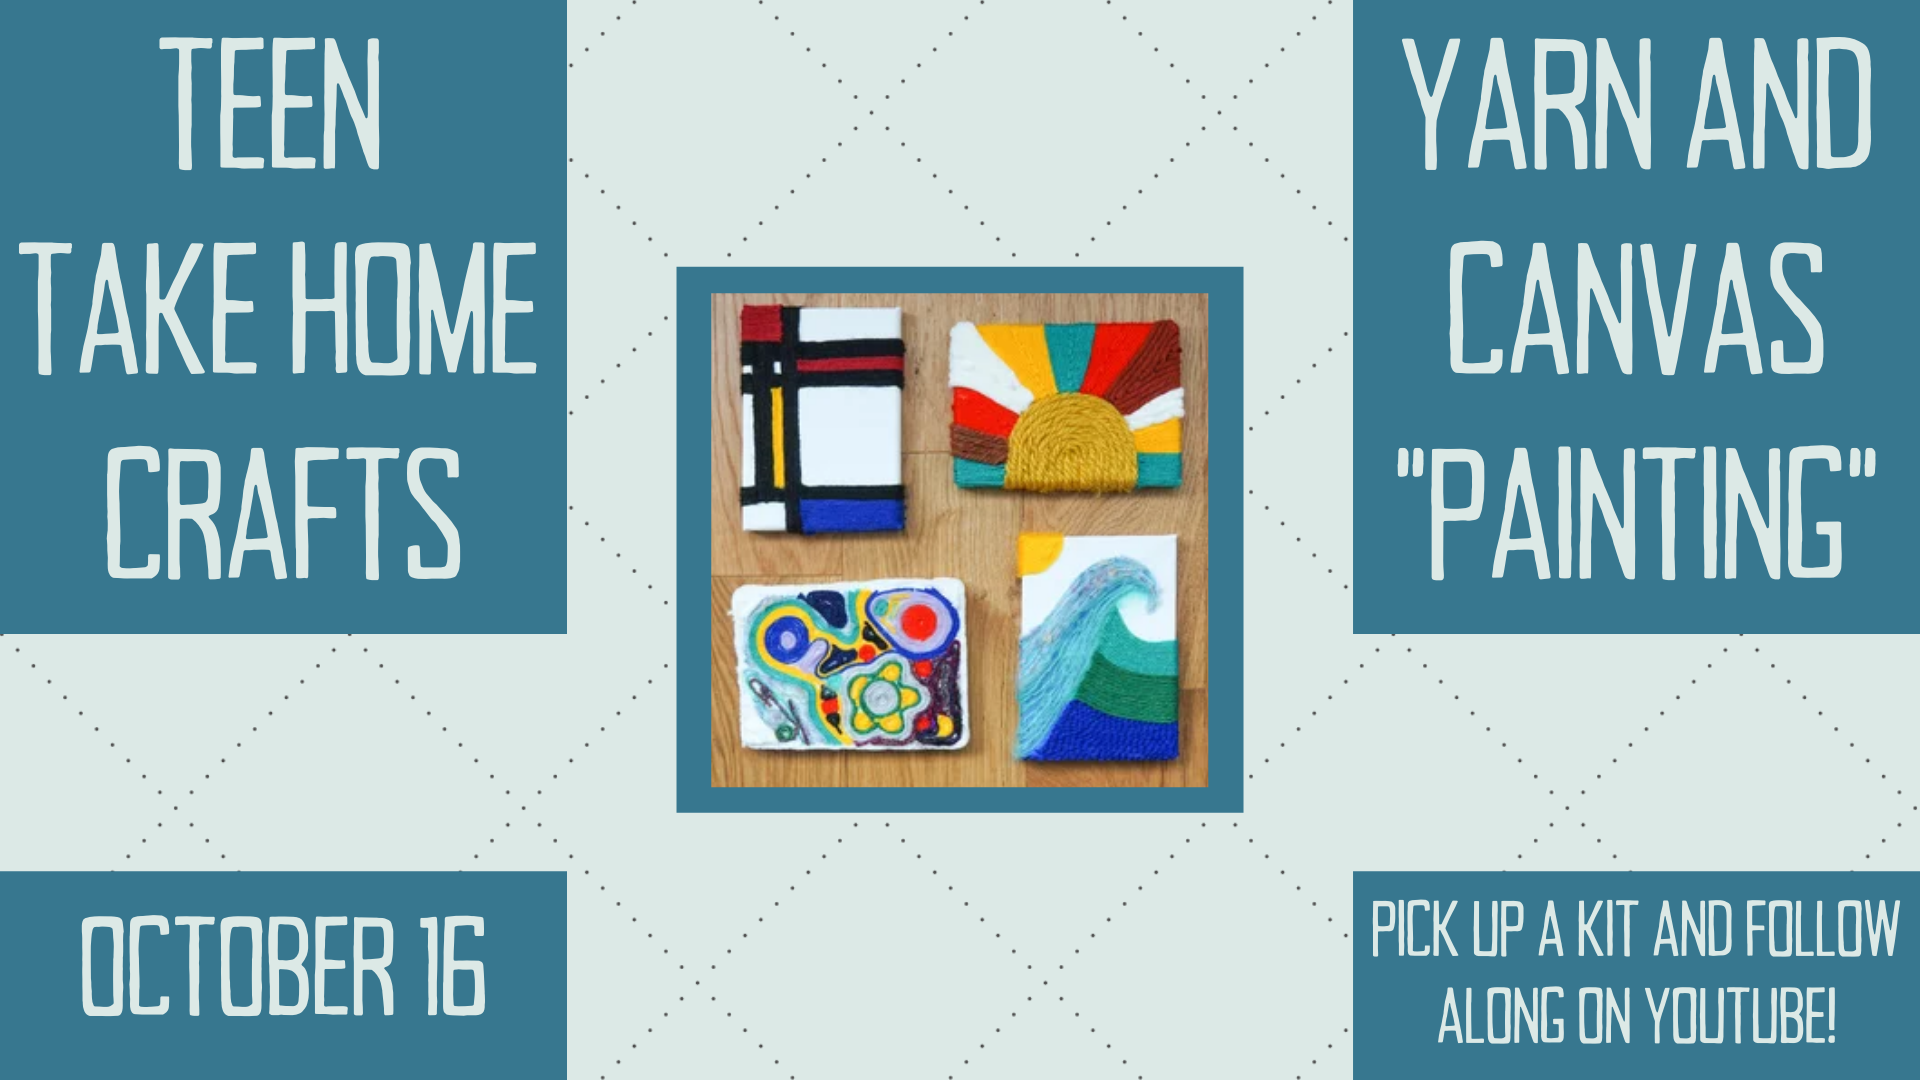 """Teen Take Home Craft: Yarn and Canvas """"Painting"""""""